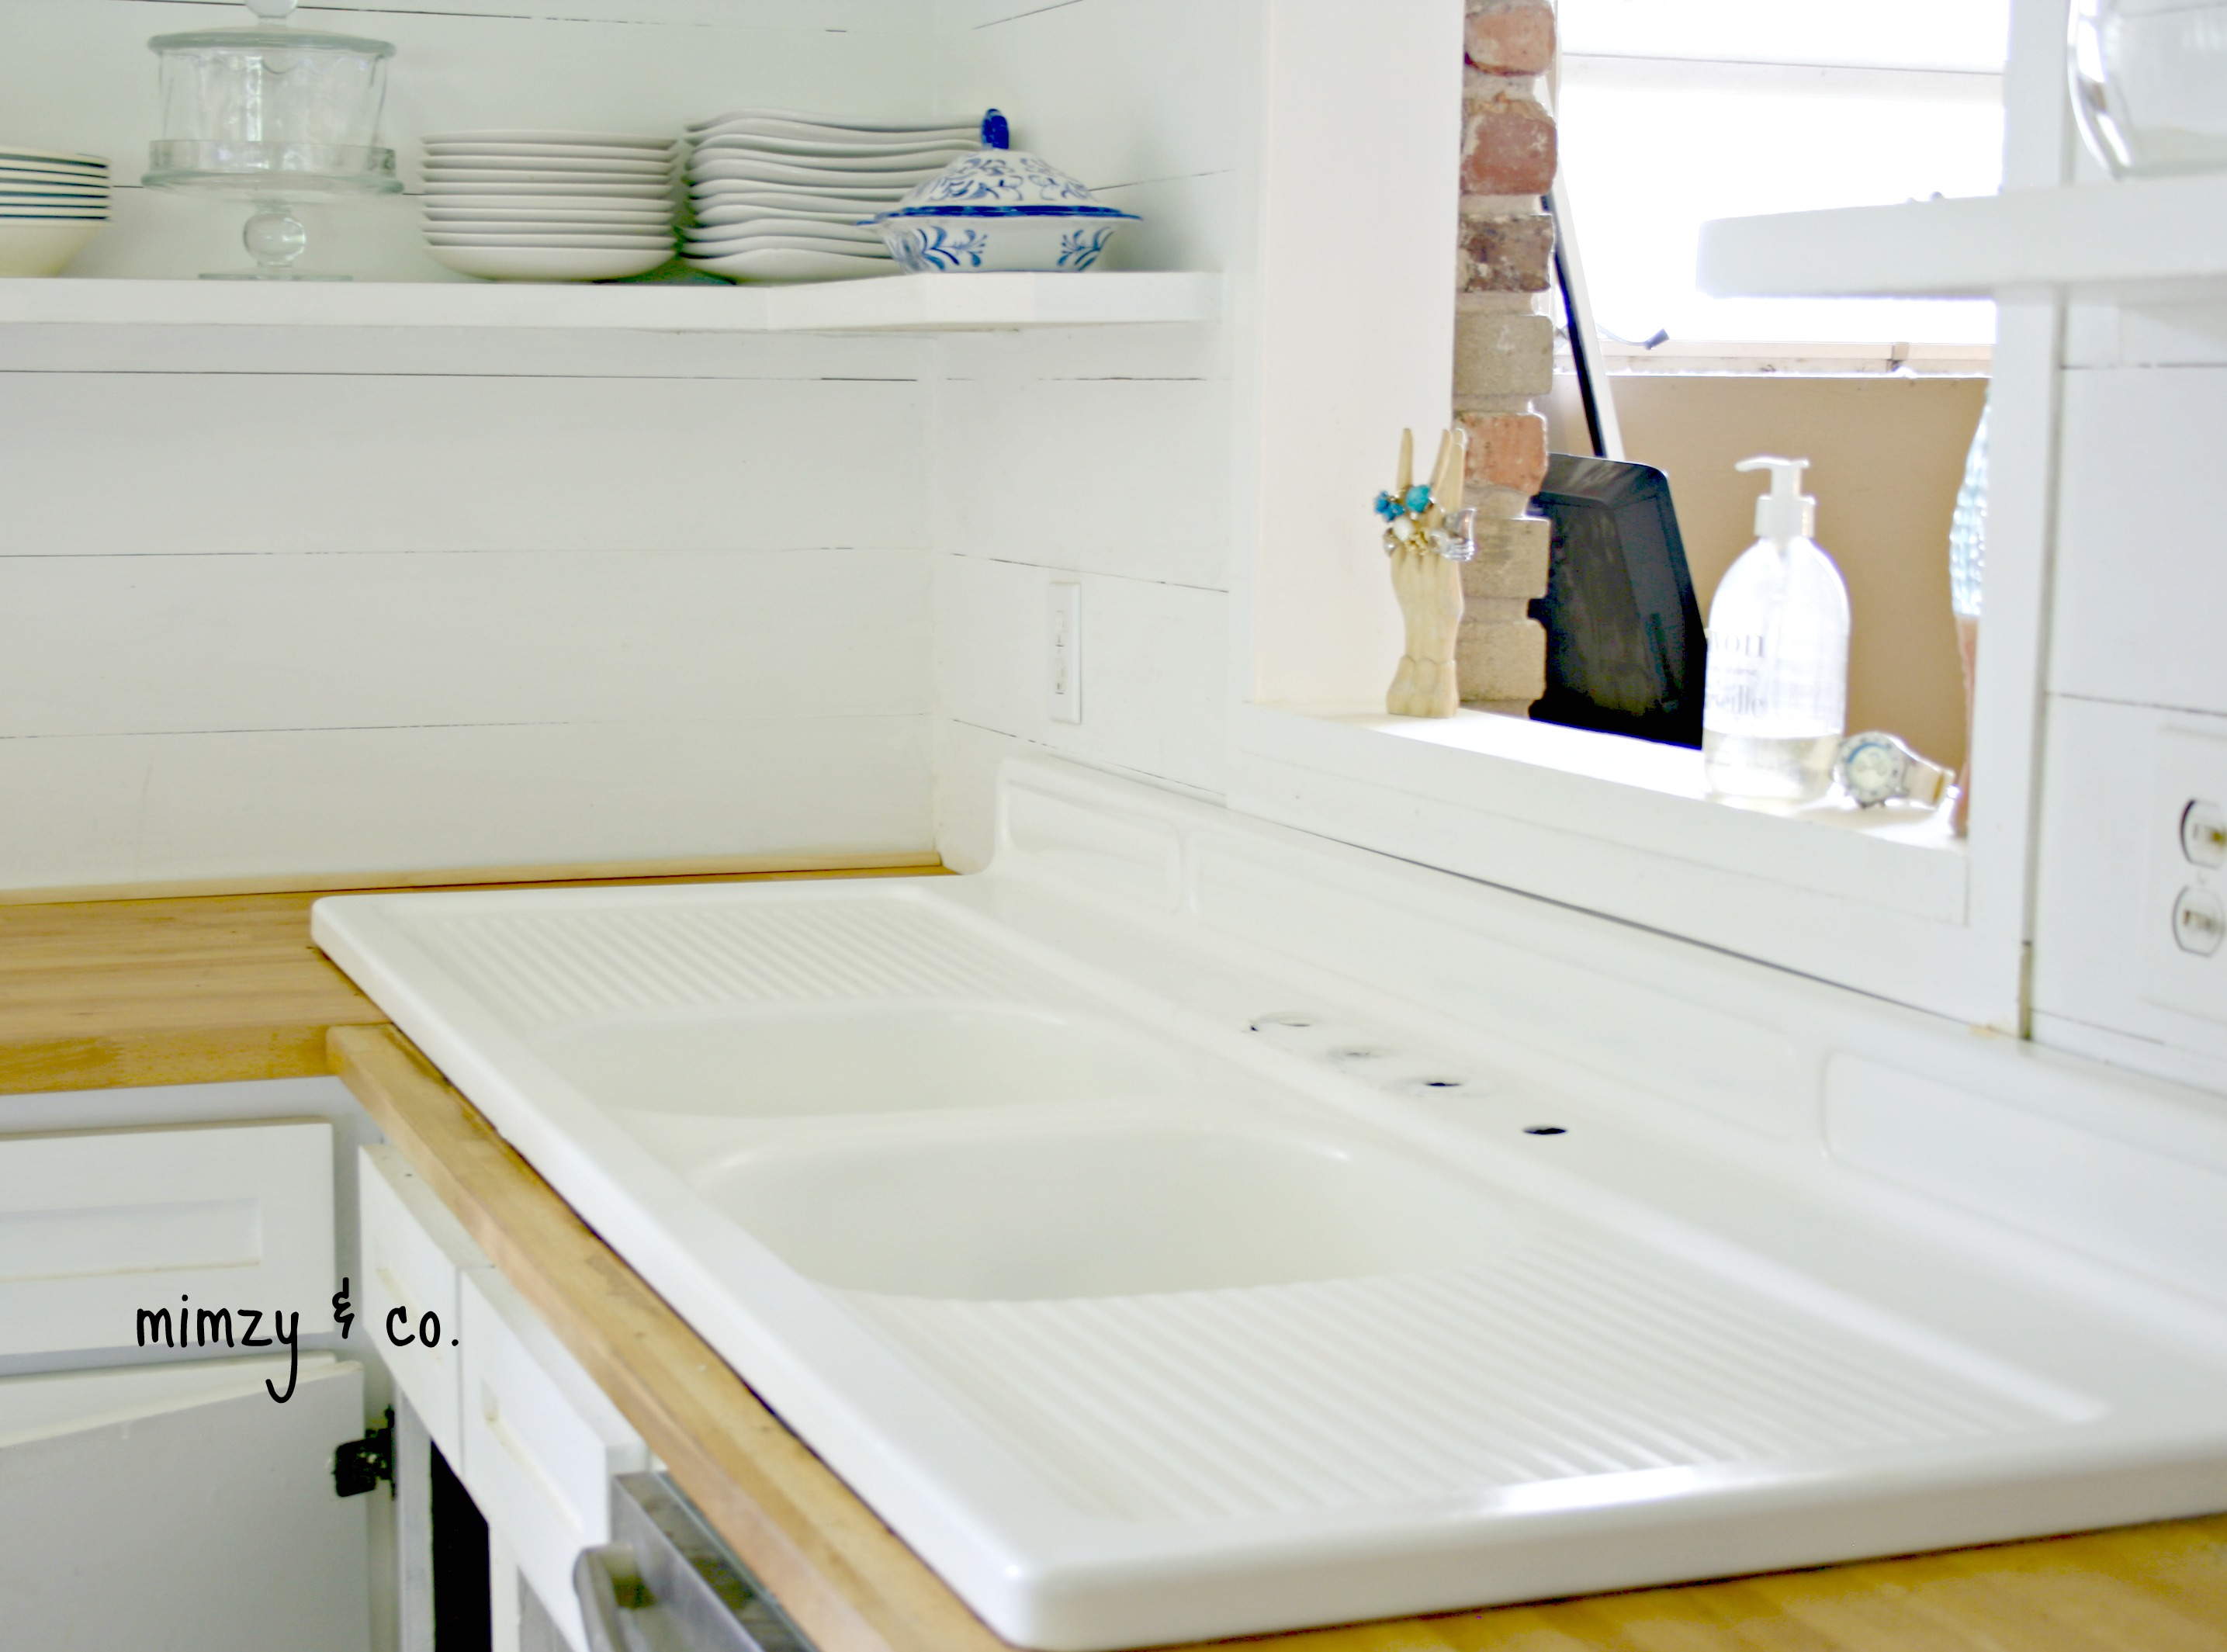 How To Refinish Kitchen Sink how i refinished my vintage cast iron kitchen sink • mimzy & company